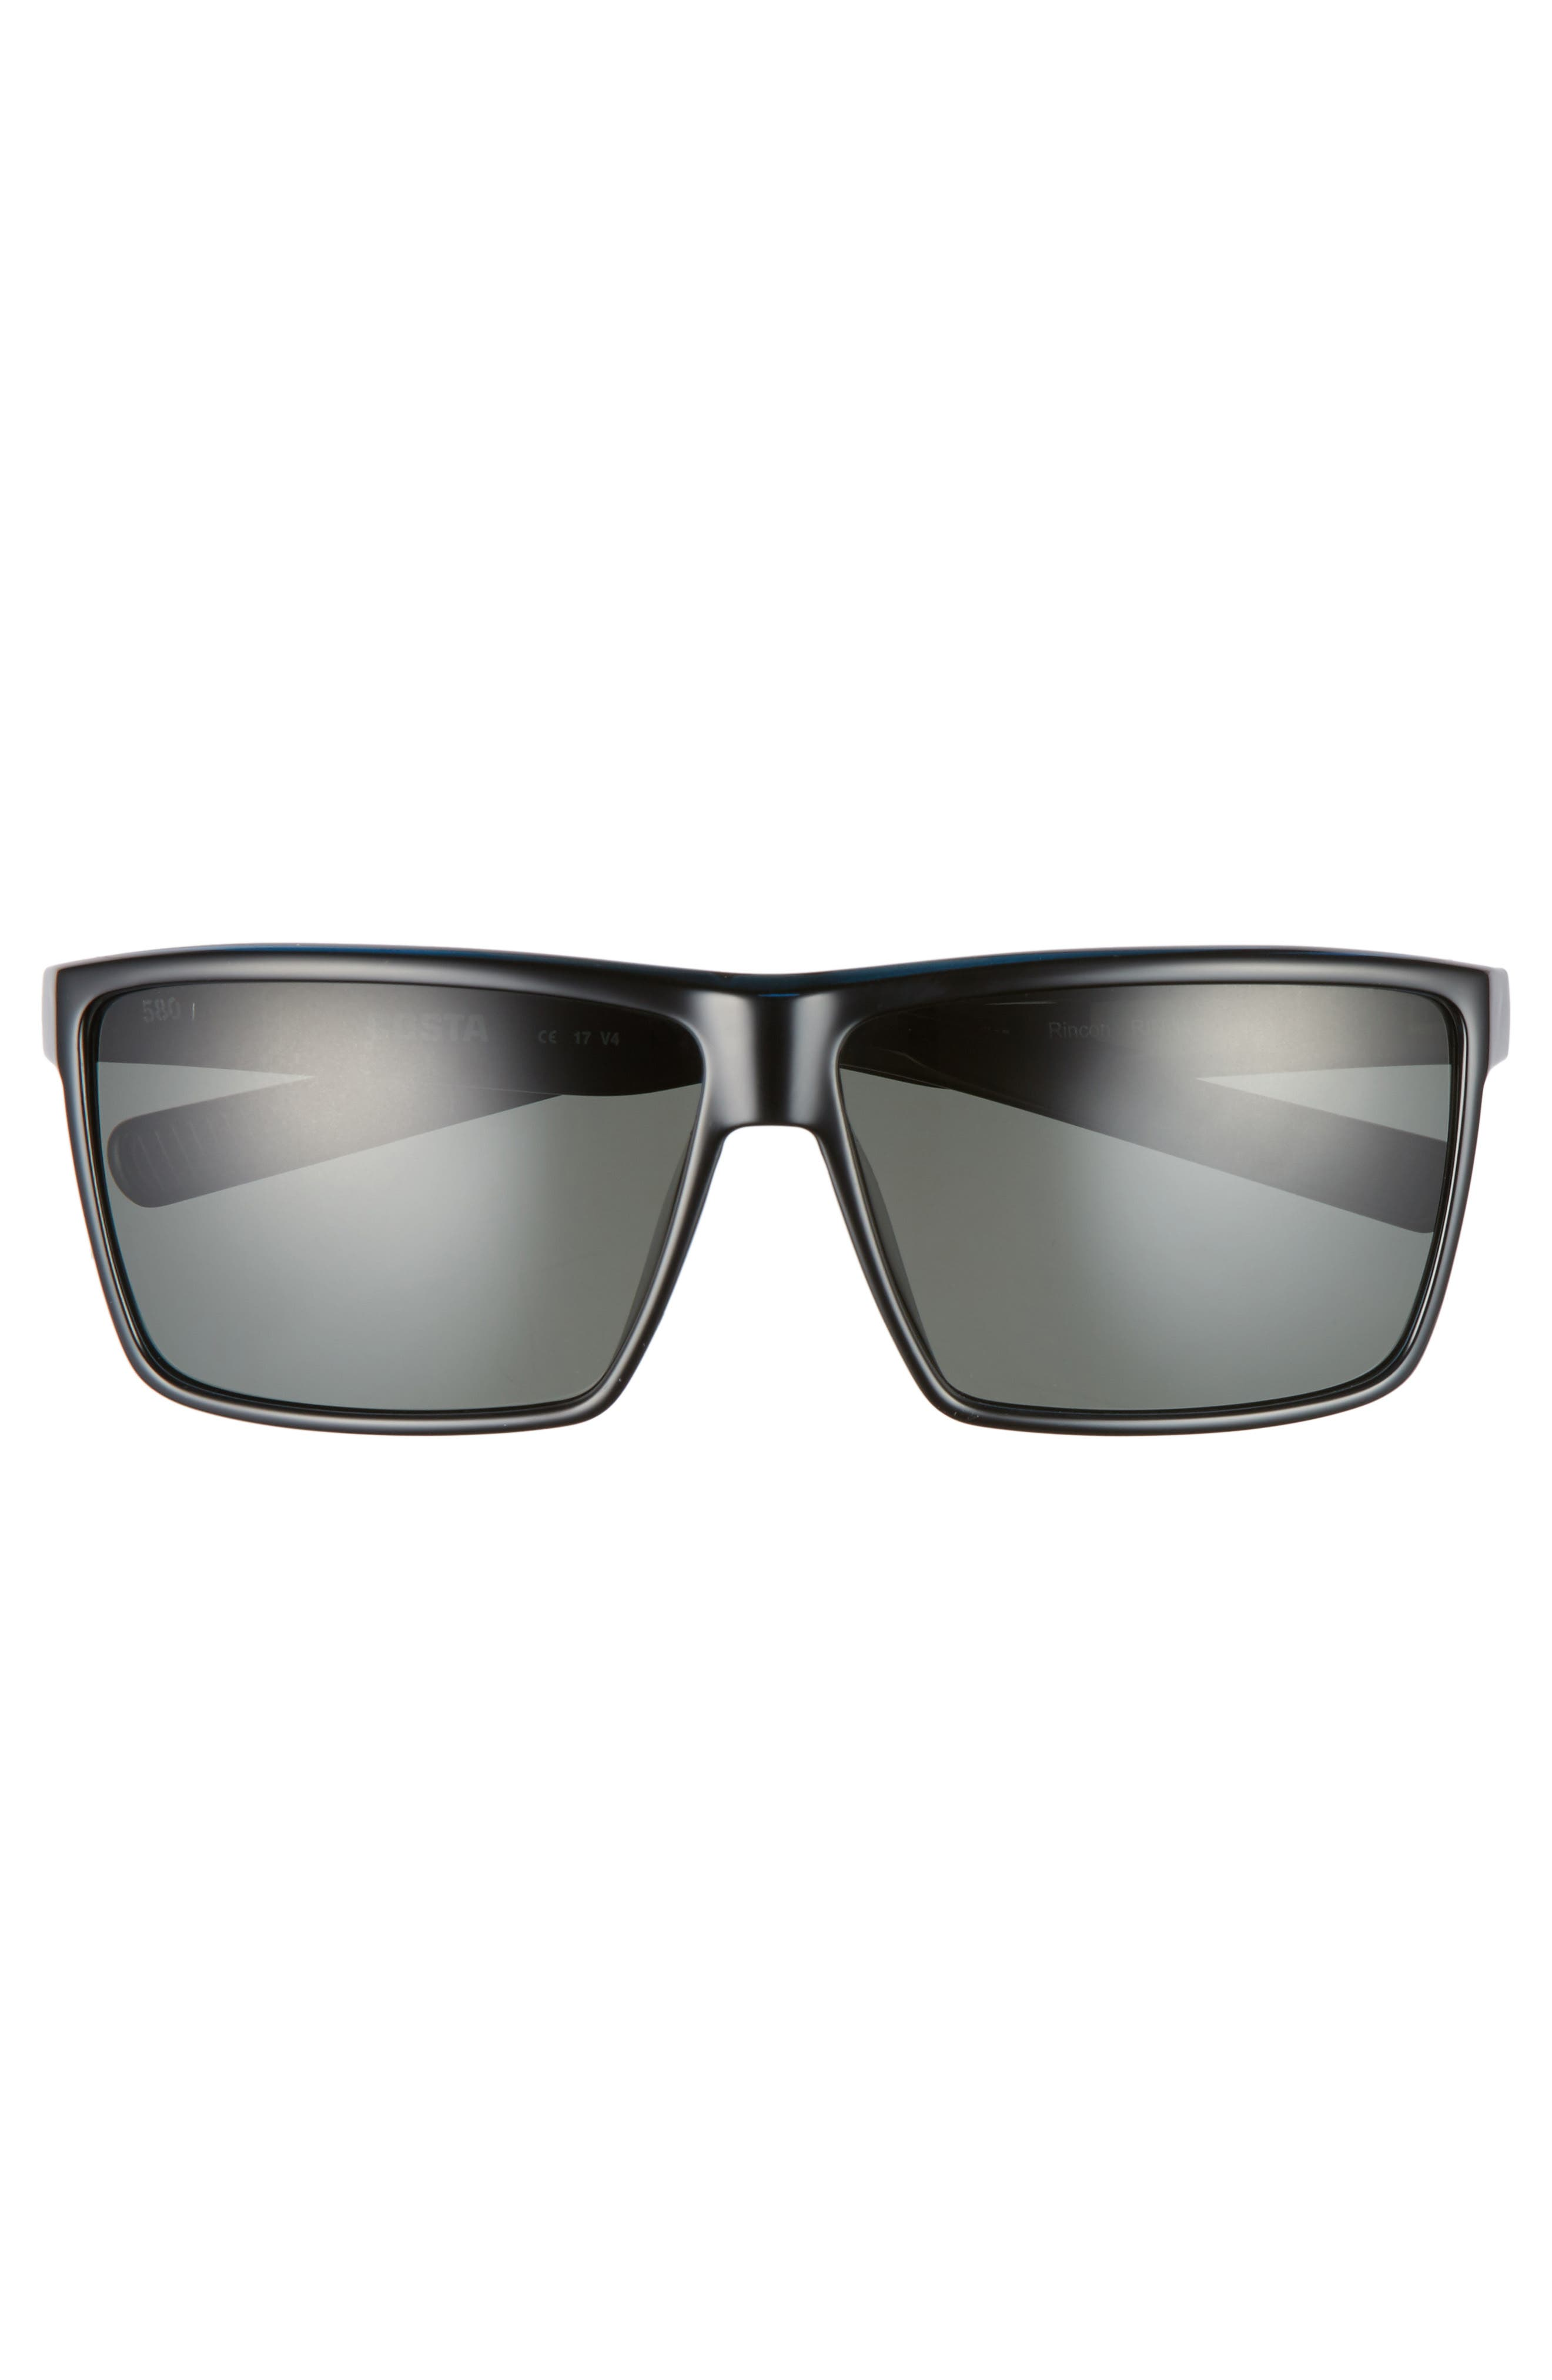 Rincon 60mm Polarized Sunglasses,                             Alternate thumbnail 2, color,                             Shiny Black/ Grey